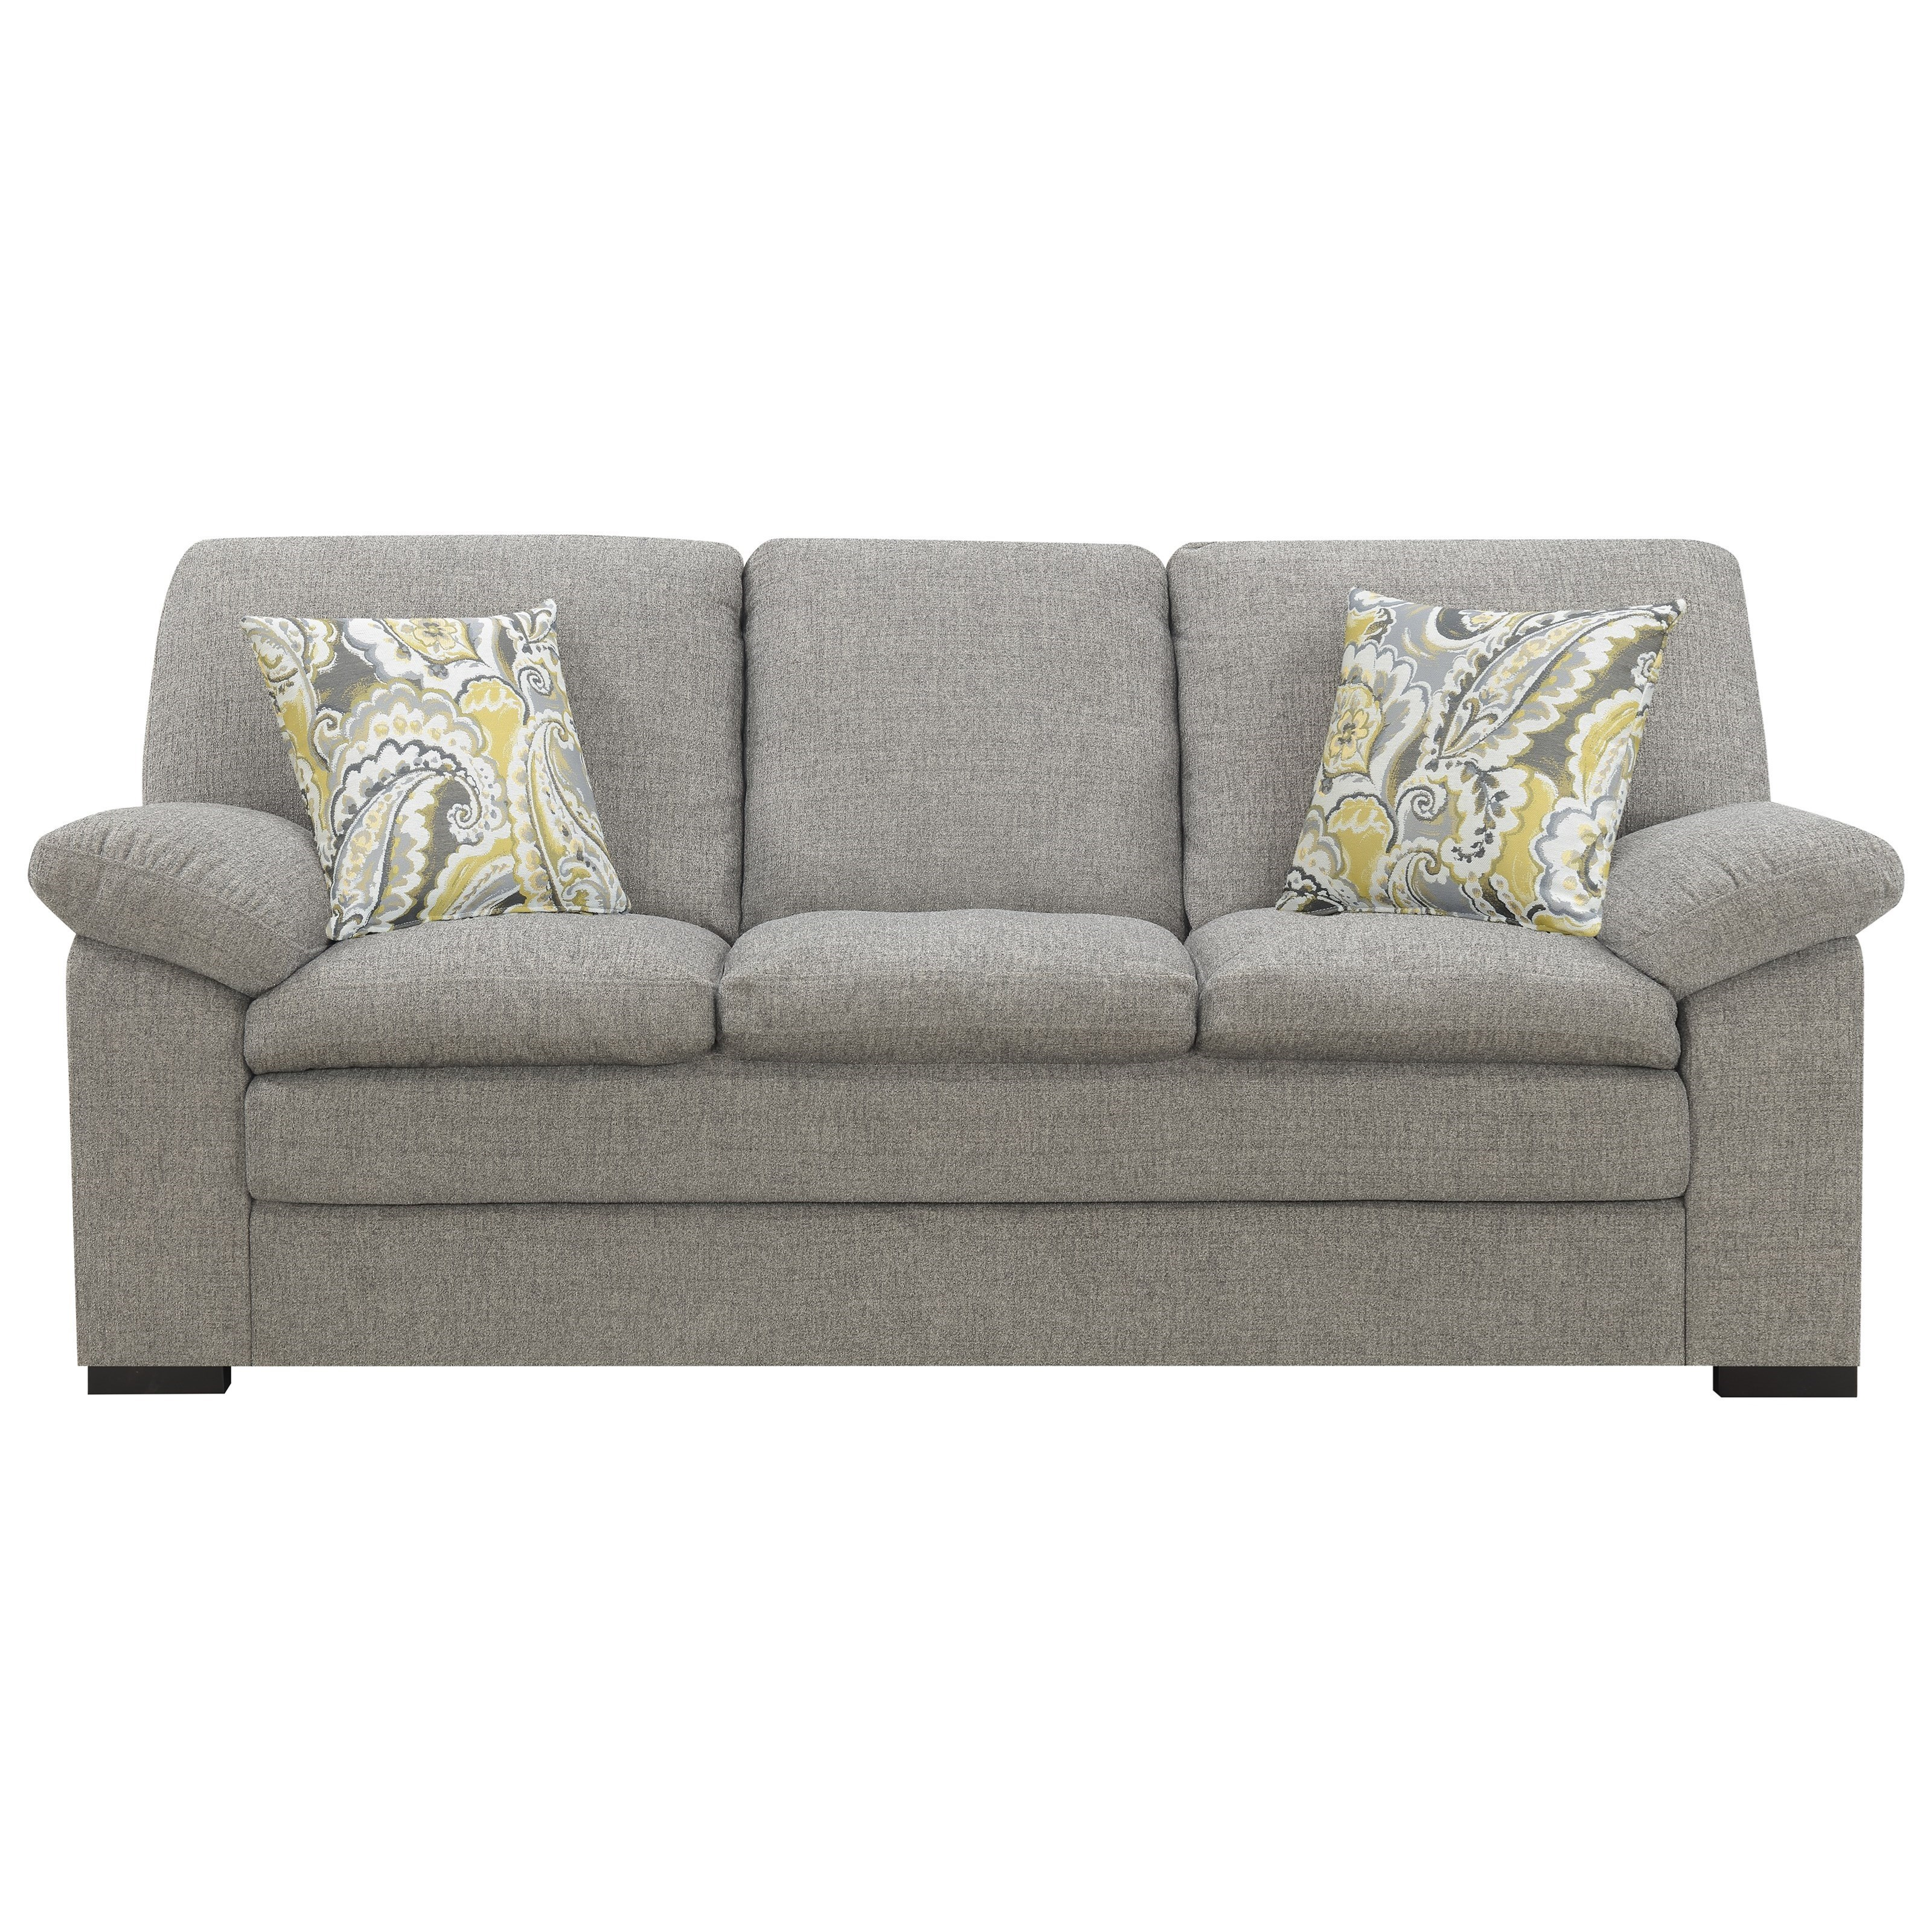 Transitional Sofa with 2 Accent Pillows